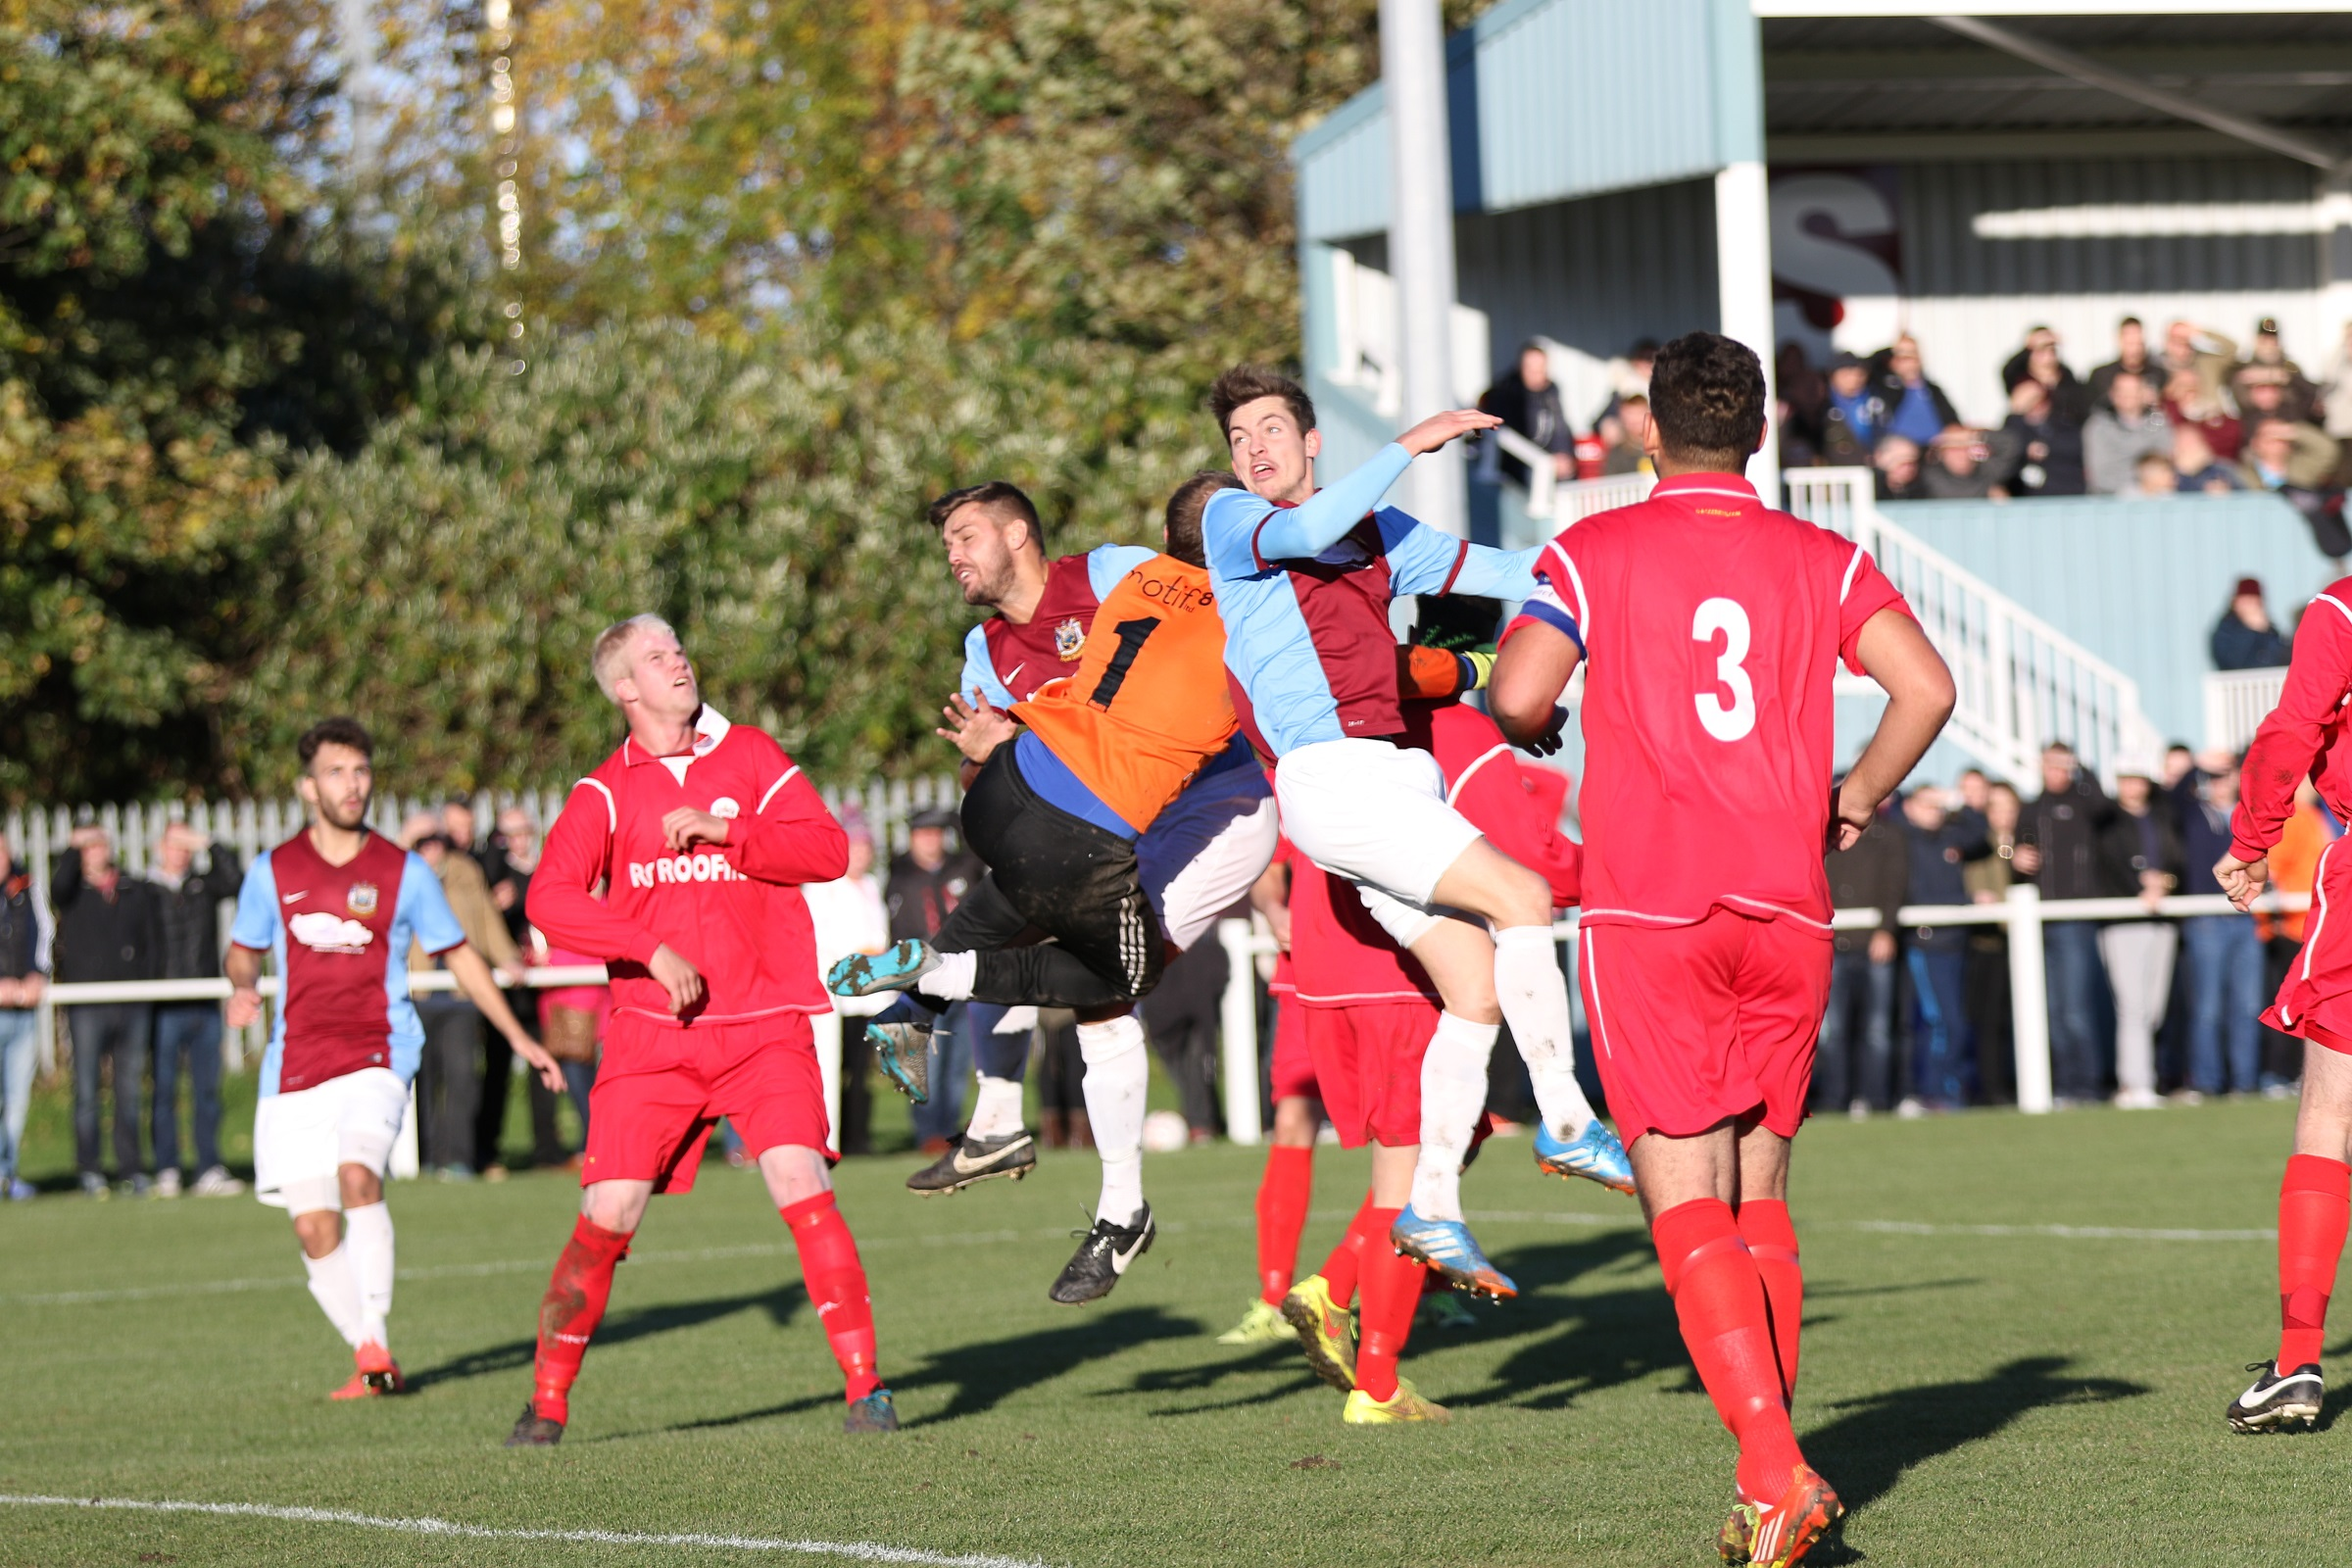 HIGHLIGHTS: South Shields 4-3 Thornaby